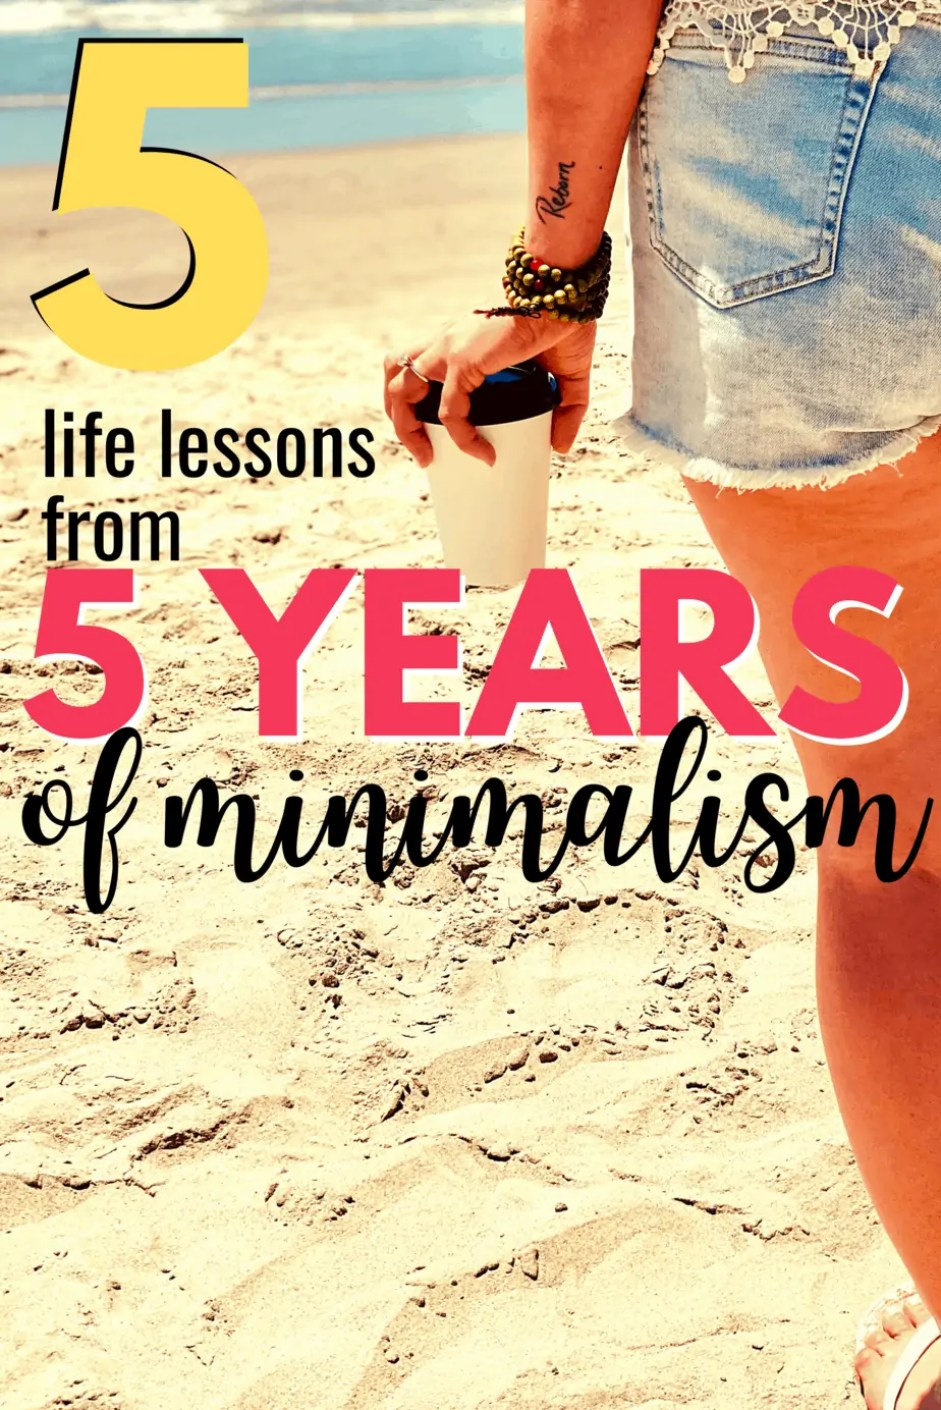 Our family downsized our house and started living a minimalist lifestyle 5 years ago! Here are 5 major lessons we want to share with you!